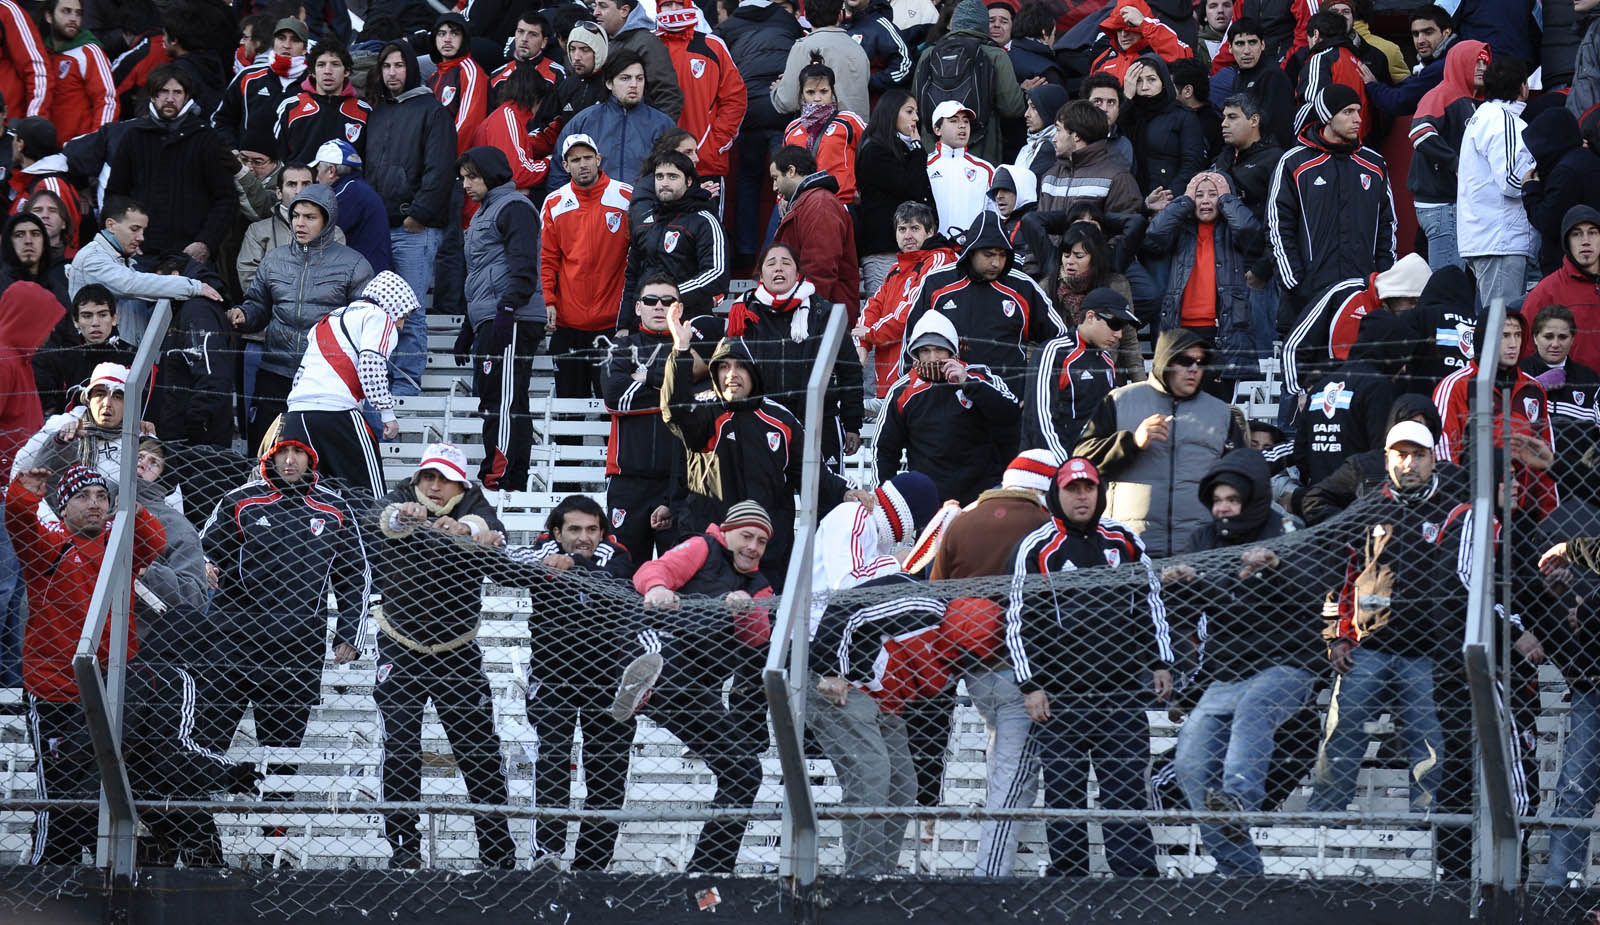 Supporters of River Plate react after the team was relegated to second division after the Argentina's Promotion football match against Belgrano, at Monumental stadium in Buenos Aires, on June 26, 2011. Argentine giants River Plate has been relegated to second division for the first time in its history after being beaten 2-0 by Belgrano in the first leg of their play-off on Wednesday and tying 1-1 in the second leg match today. On the other hand Belgrano will play in first division next season. AFP PHOTO/Alejandro PAGNI (Photo credit should read ALEJANDRO PAGNI/AFP/Getty Images)